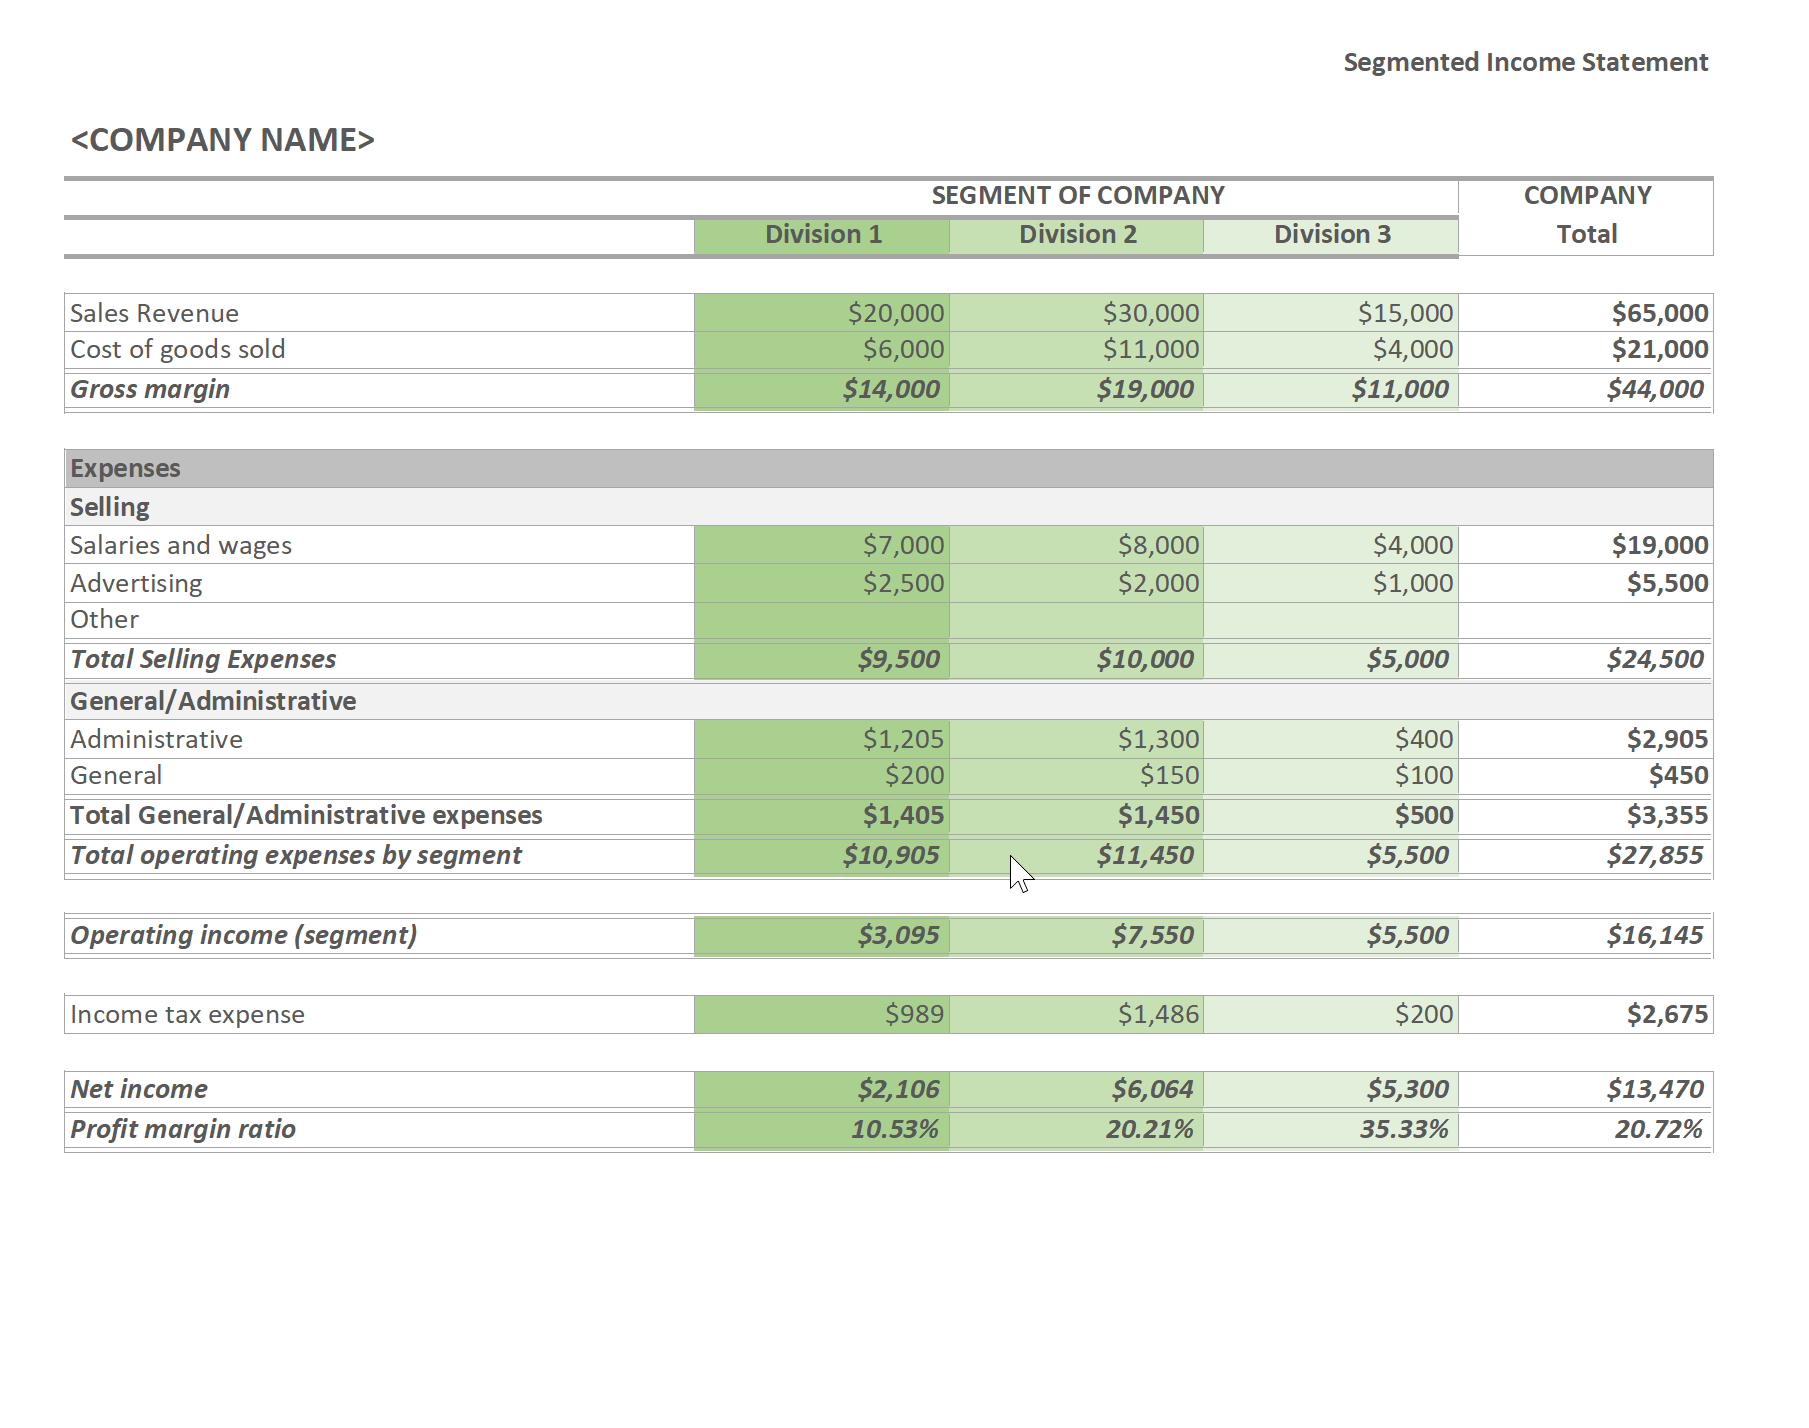 Free Segmented Income Statement